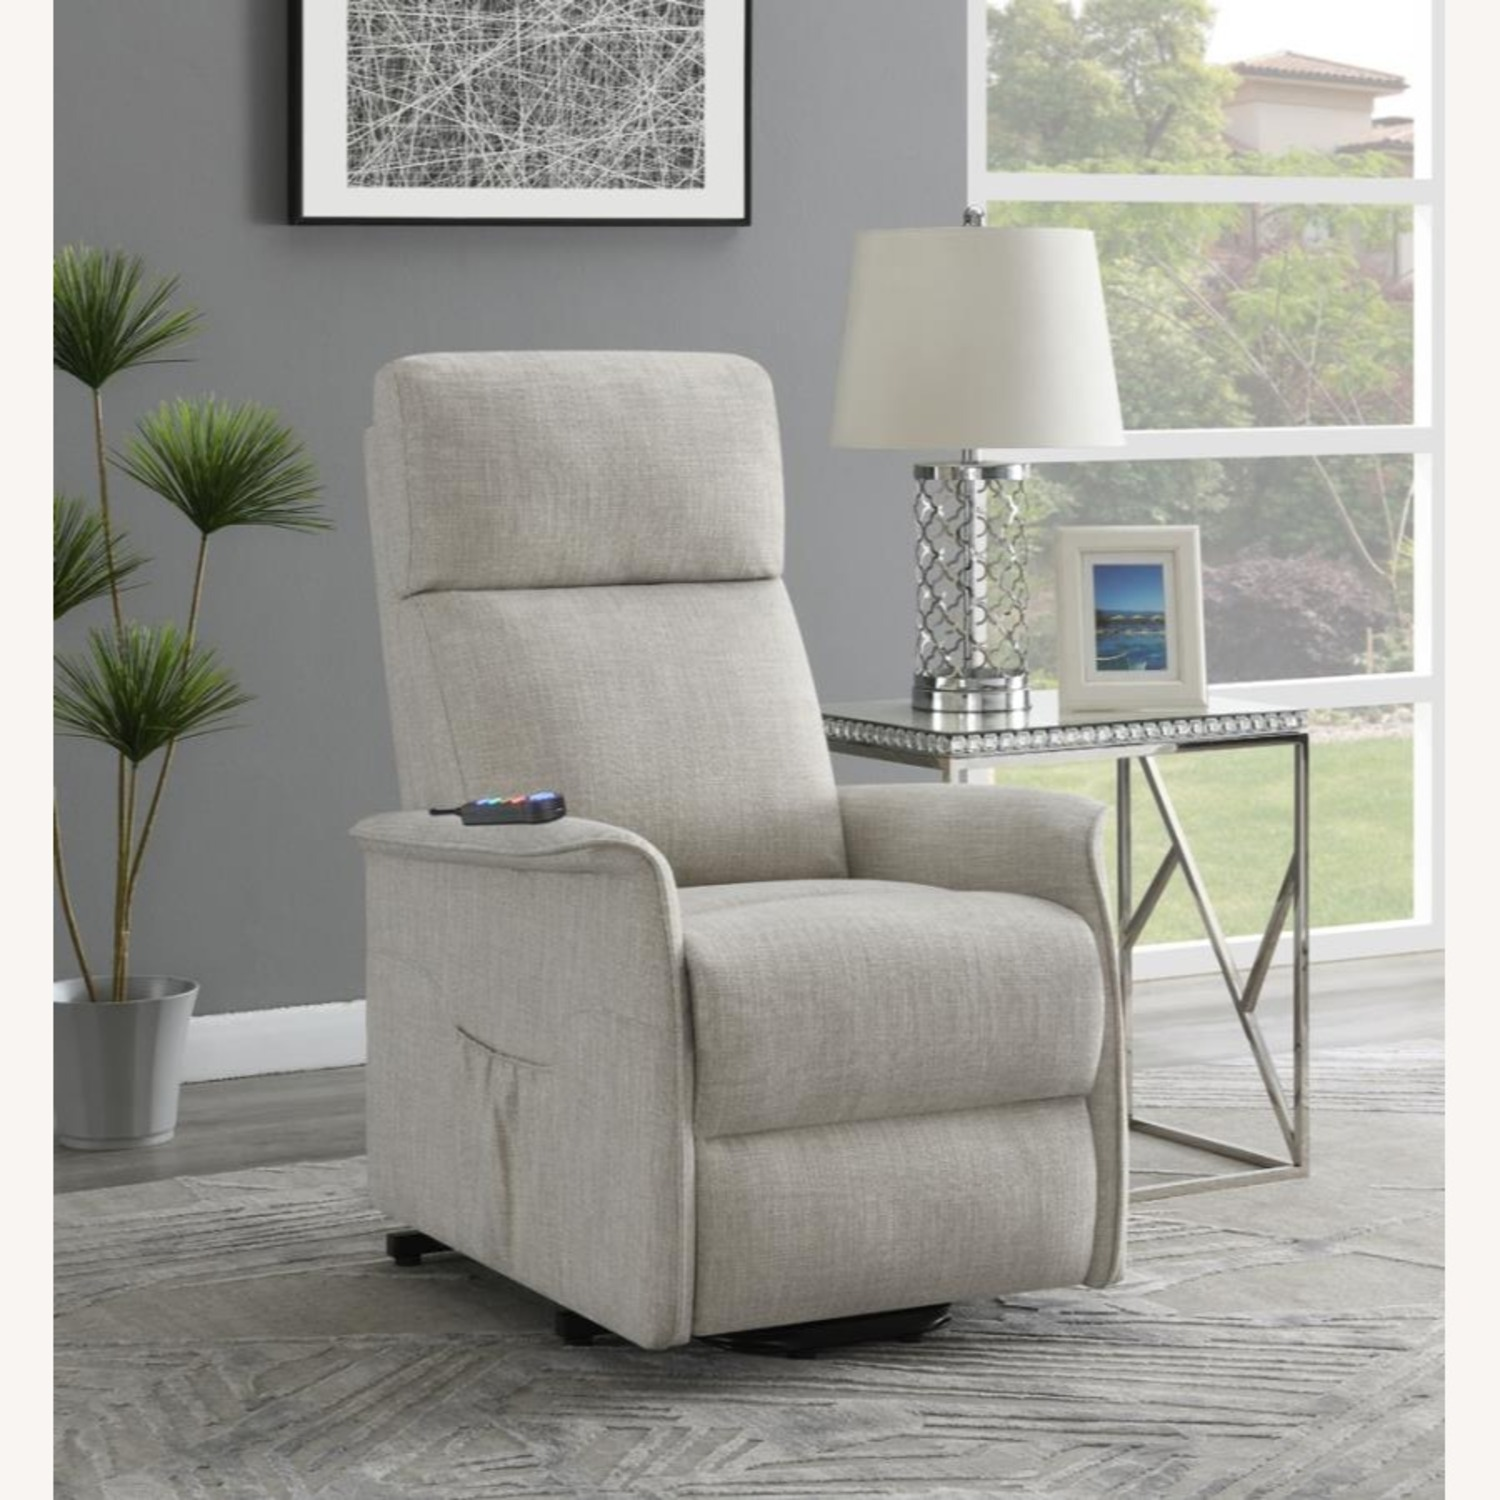 Power Lift Recliner Tufted In Beige Fabric - image-9